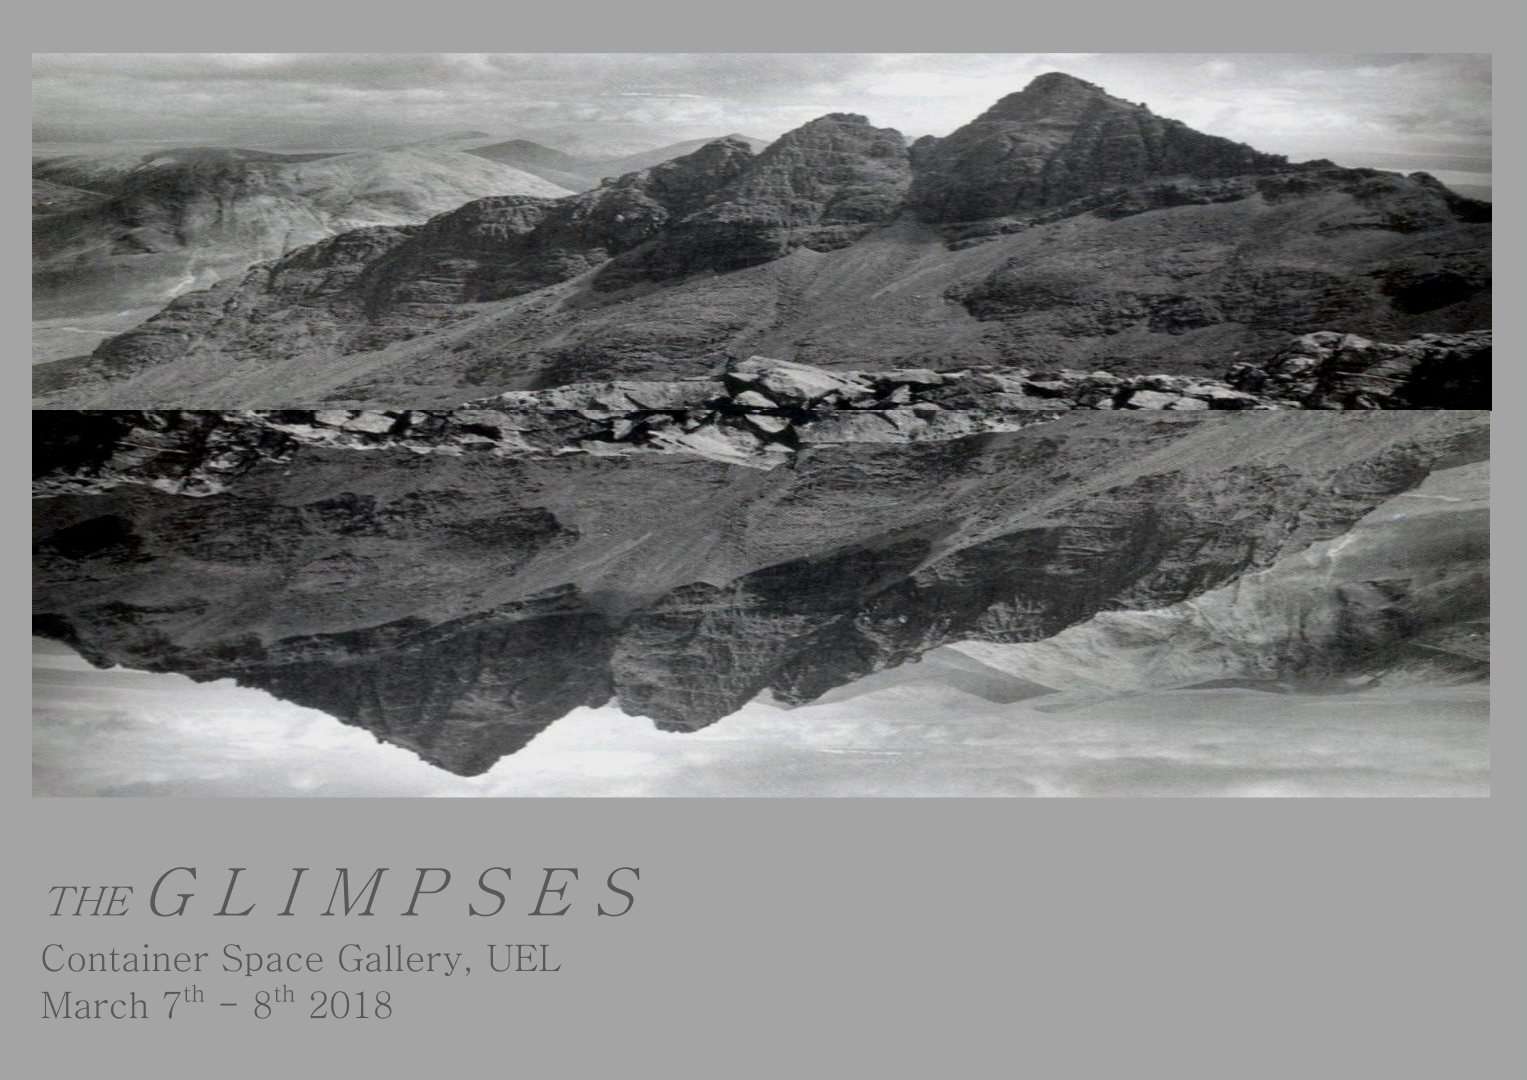 the glimpses poster_1.PNG